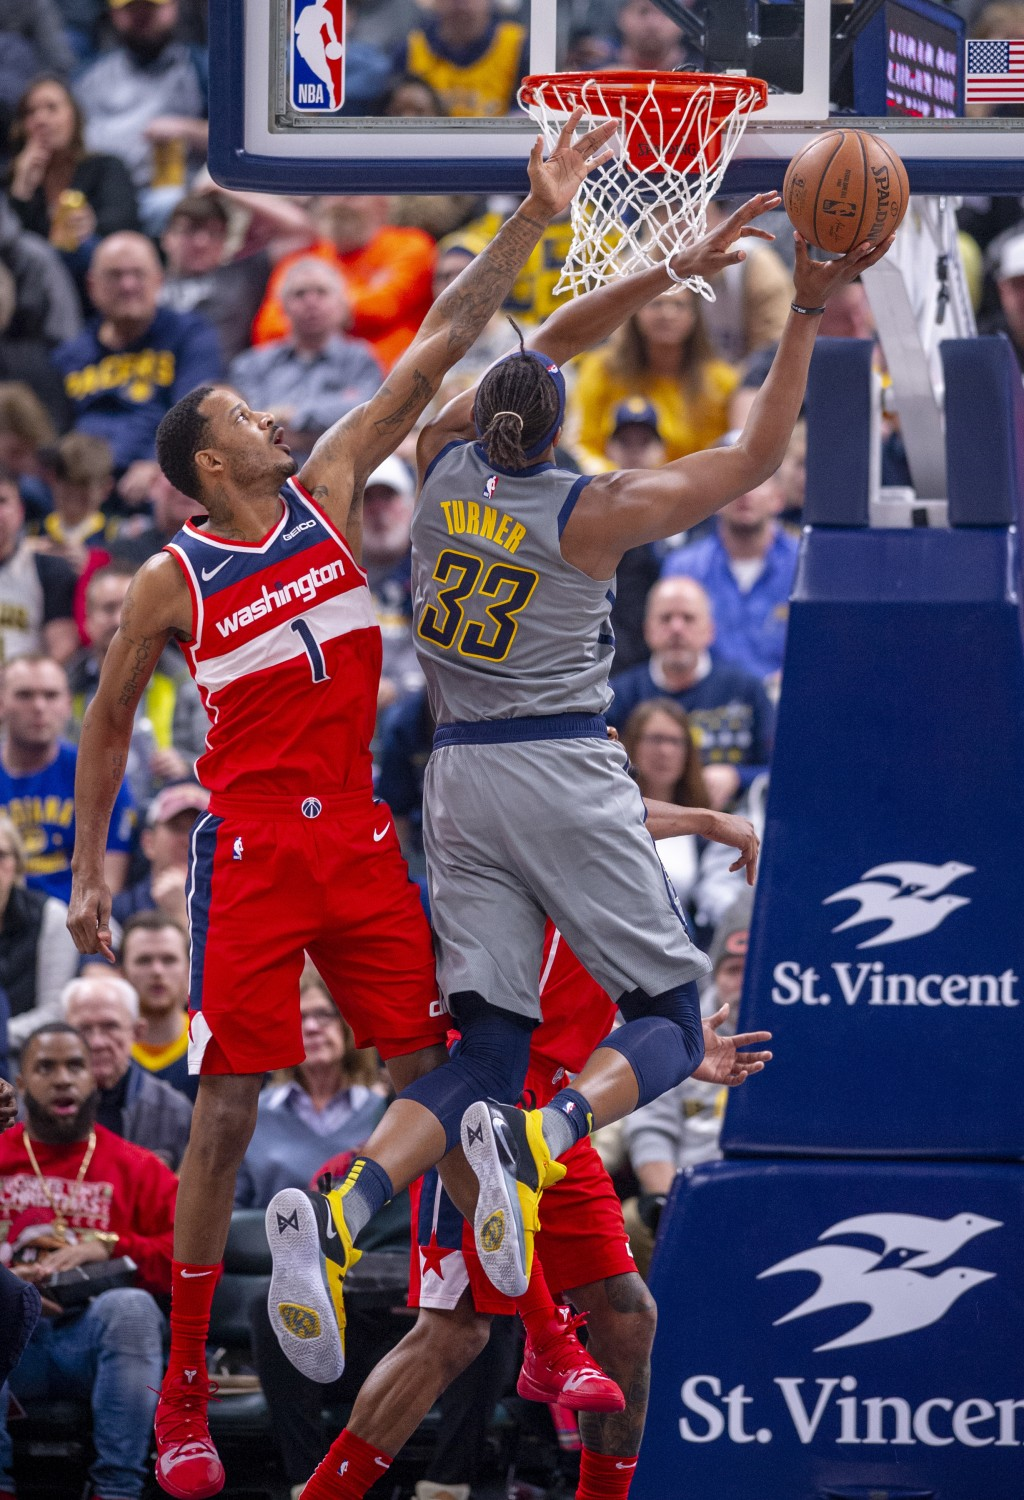 Indiana Pacers center Myles Turner (33) tries to shoot around the defensive efforts of Washington Wizards forward Trevor Ariza (1) during an NBA baske...